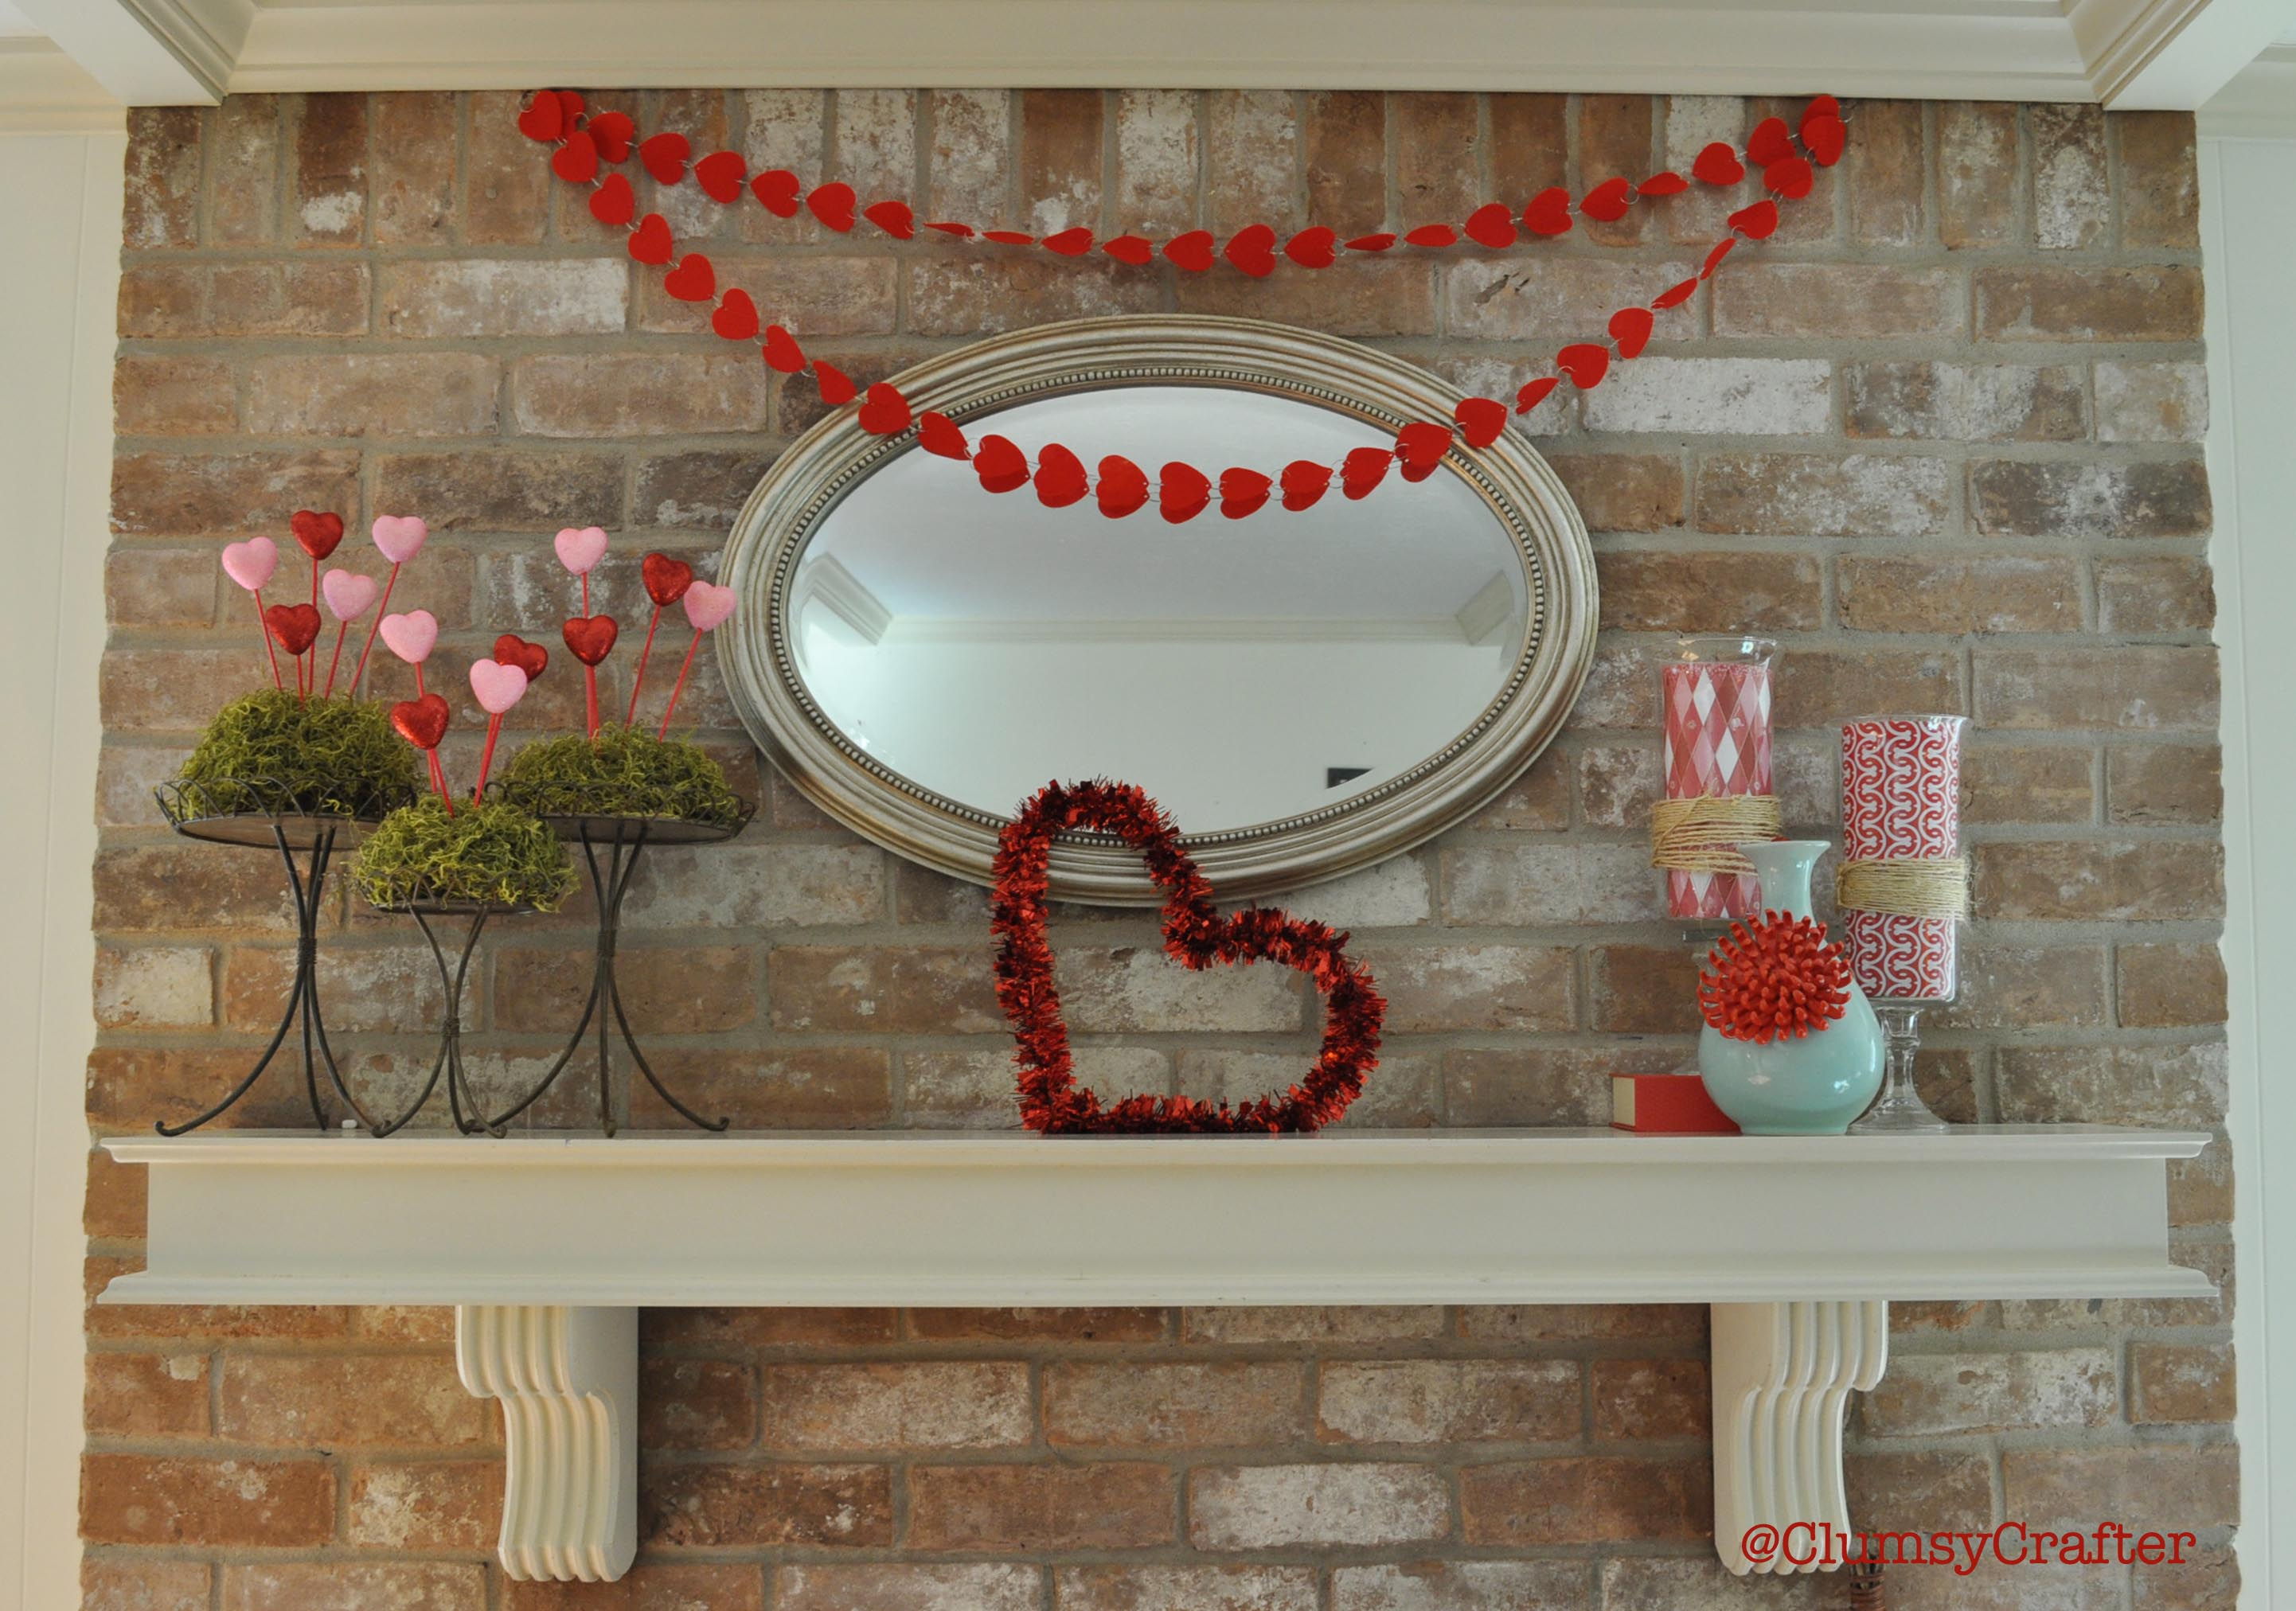 fullxfull decor listing decorations il baby bridal party ebve day valentines zoom shower